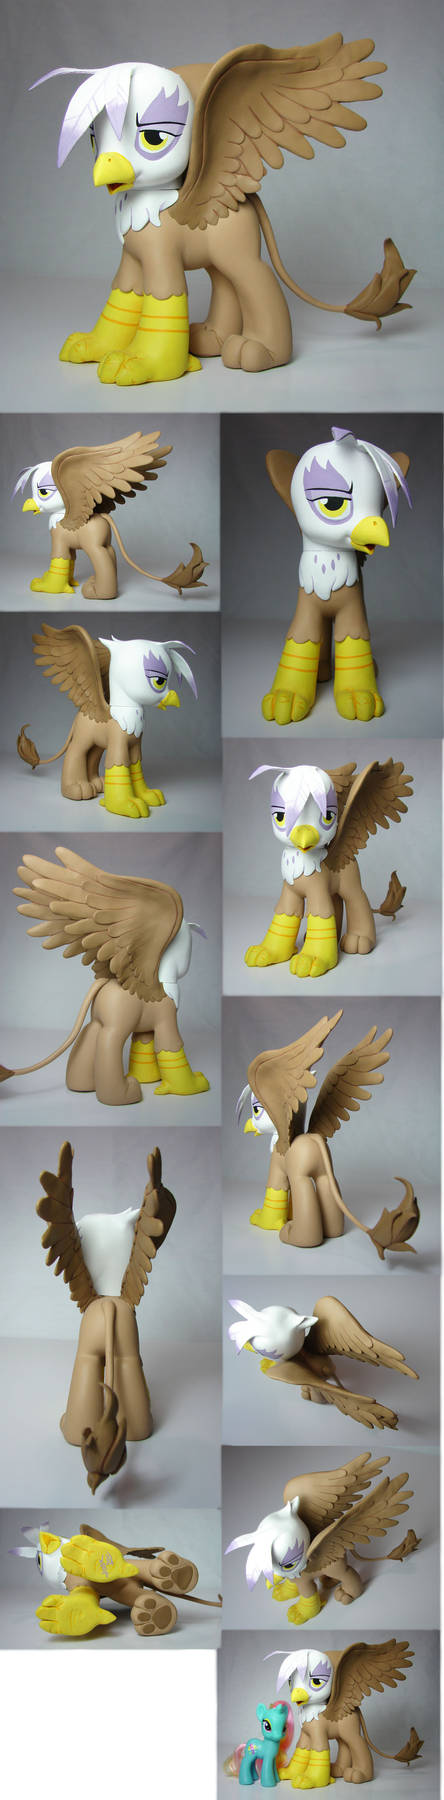 Gilda the Griffon my little pony FIM custom by Woosie